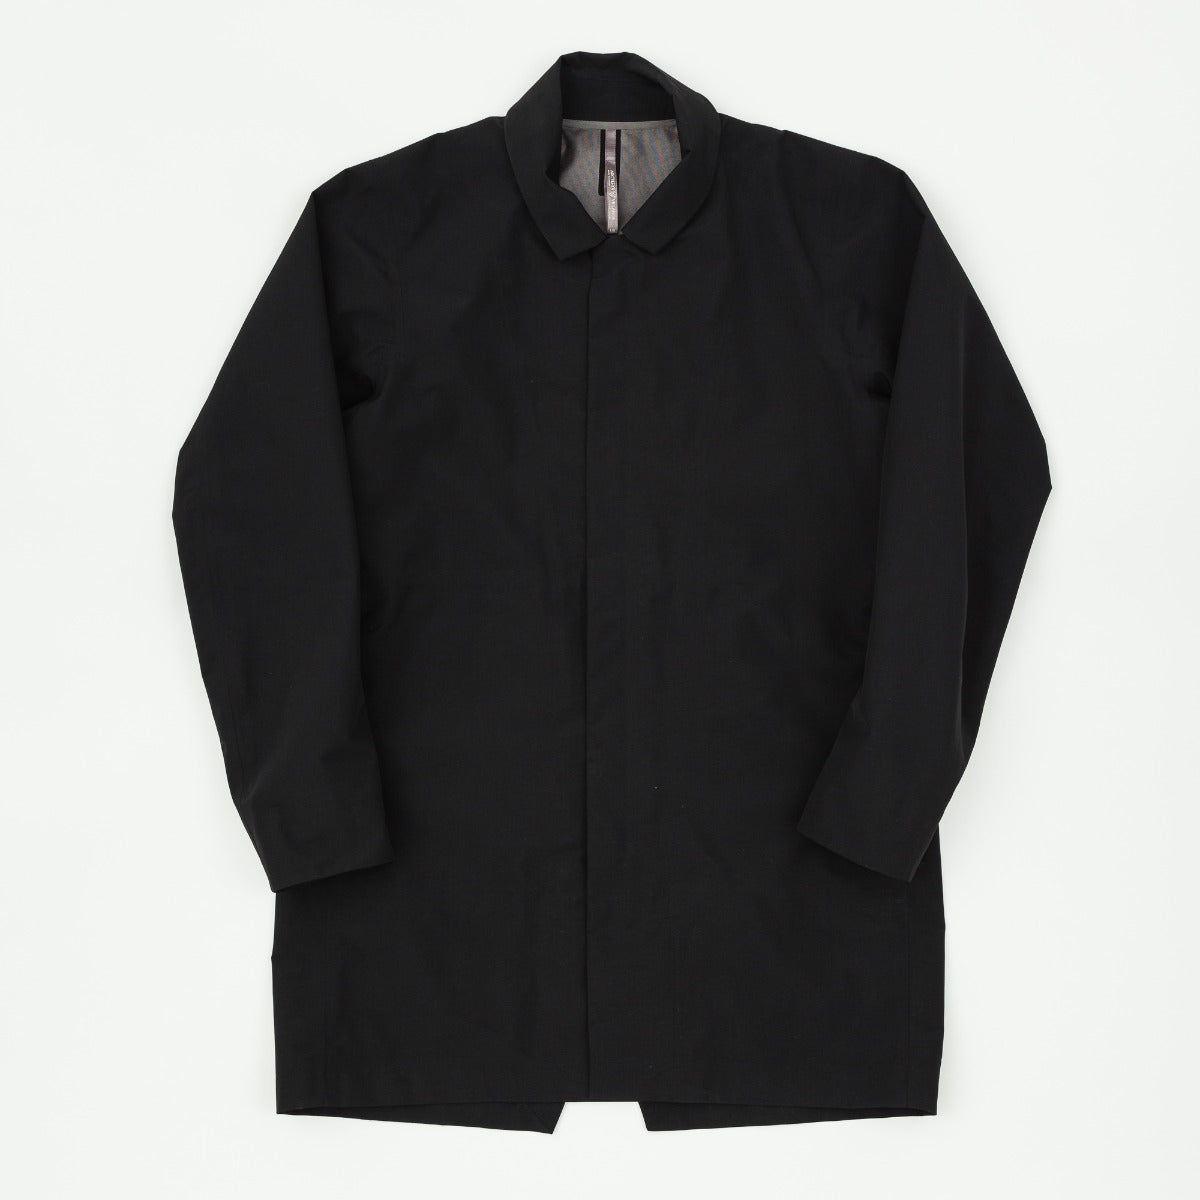 Arc'teryx Veilance Partition AR Gore-Tex Coat